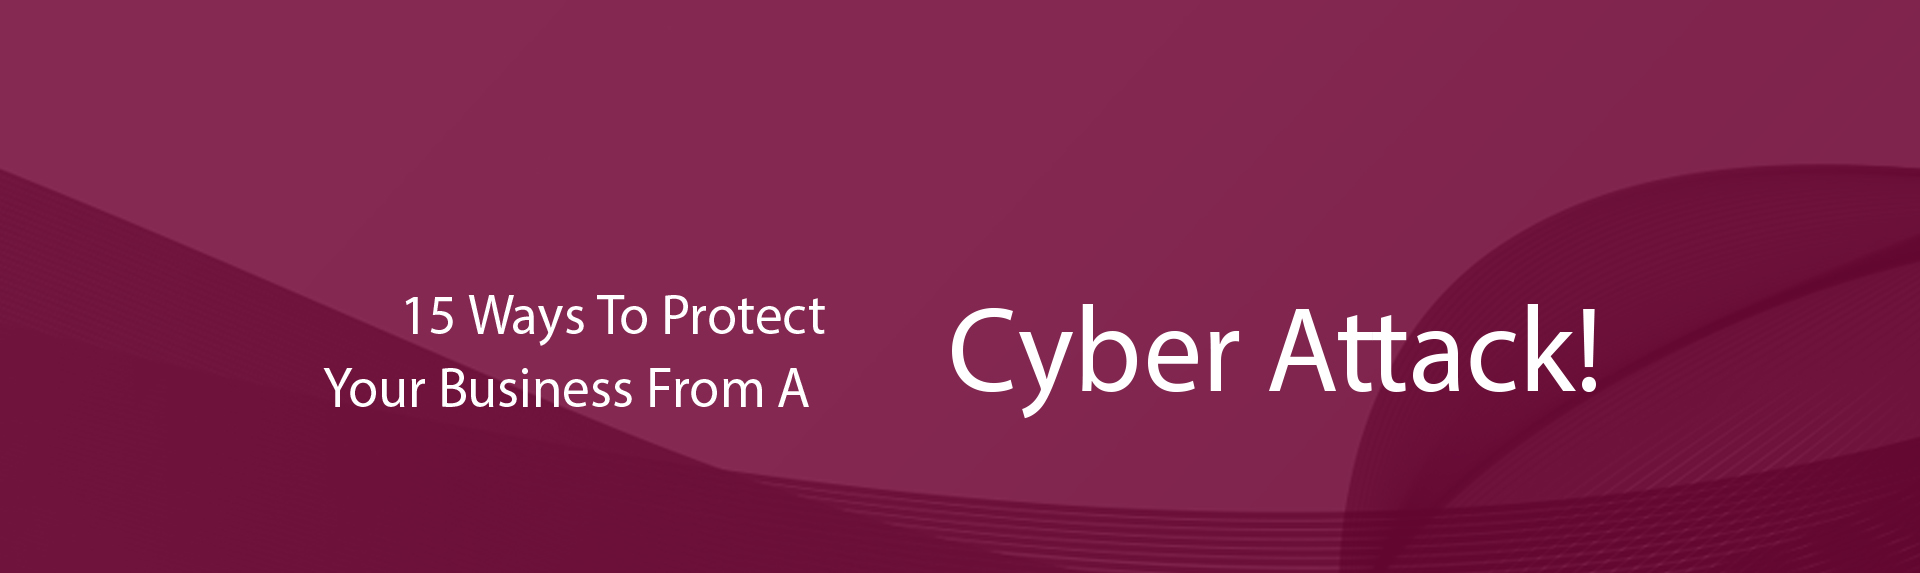 Cyber Attack! 15 ways to protect your business